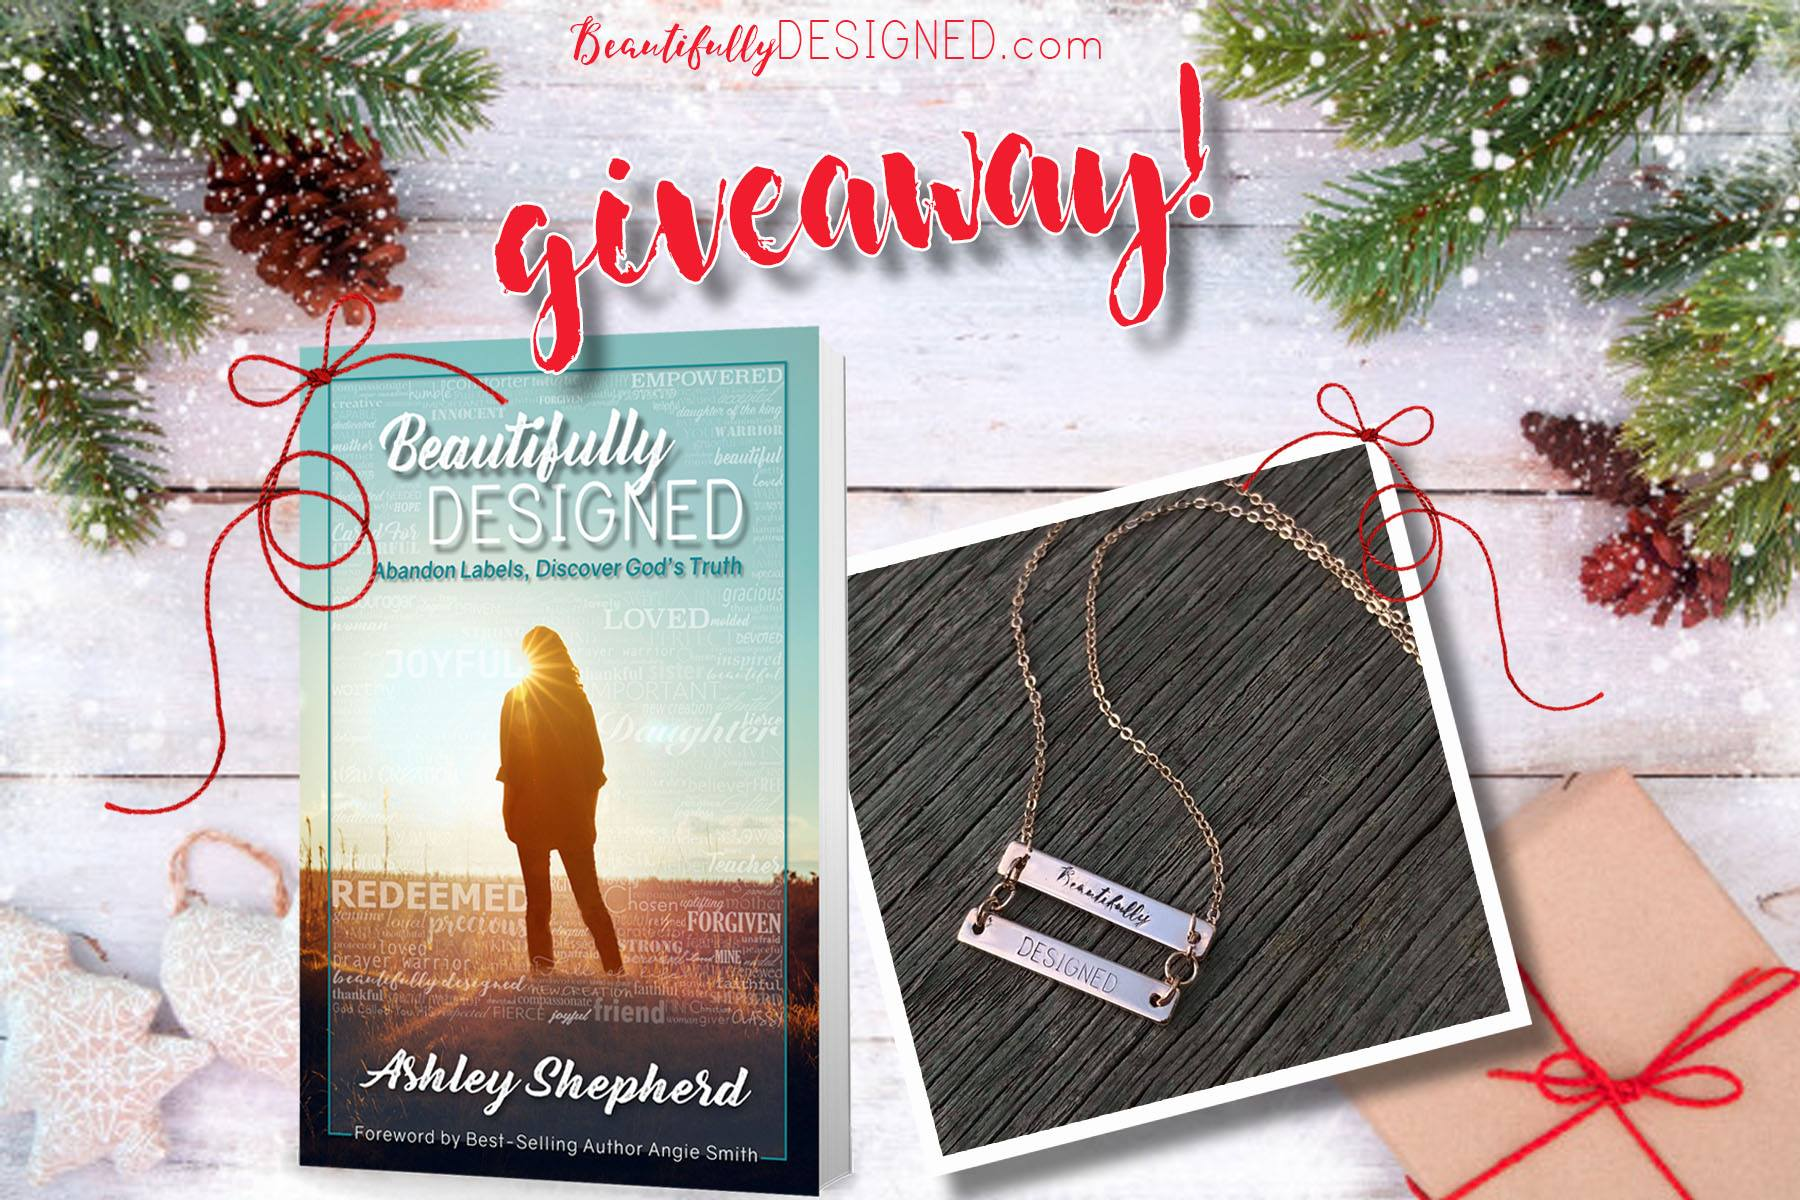 Beautifully Designed Book & Necklace Giveaway